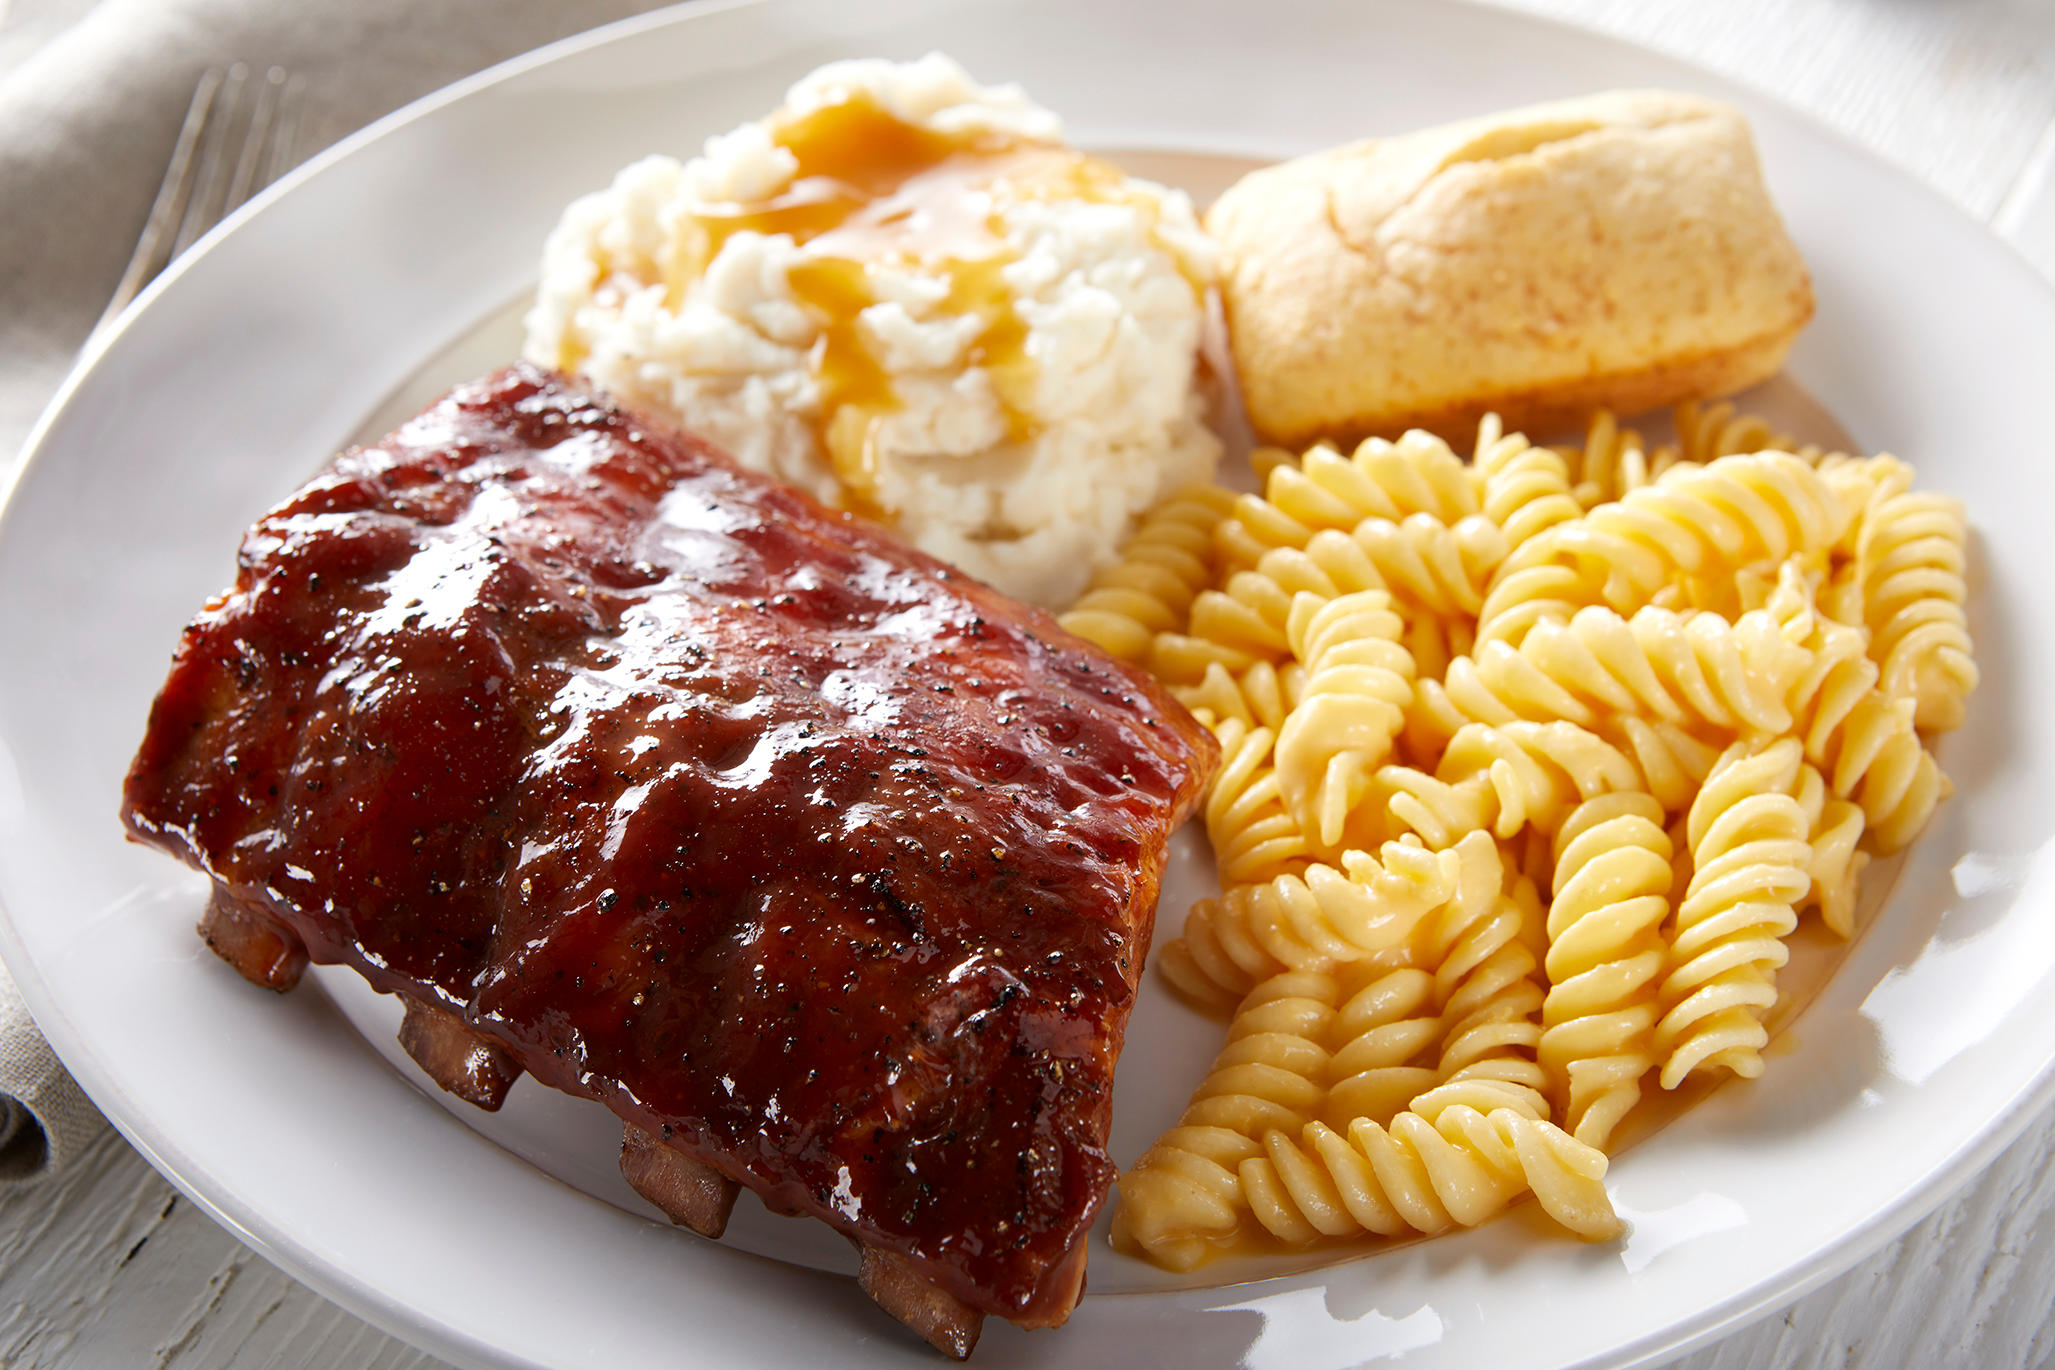 New! Baby Back Ribs. Our slow-cooked, fall-off-the-bone Baby Back Ribs are seasoned then brushed with sweet hickory BBQ sauce.